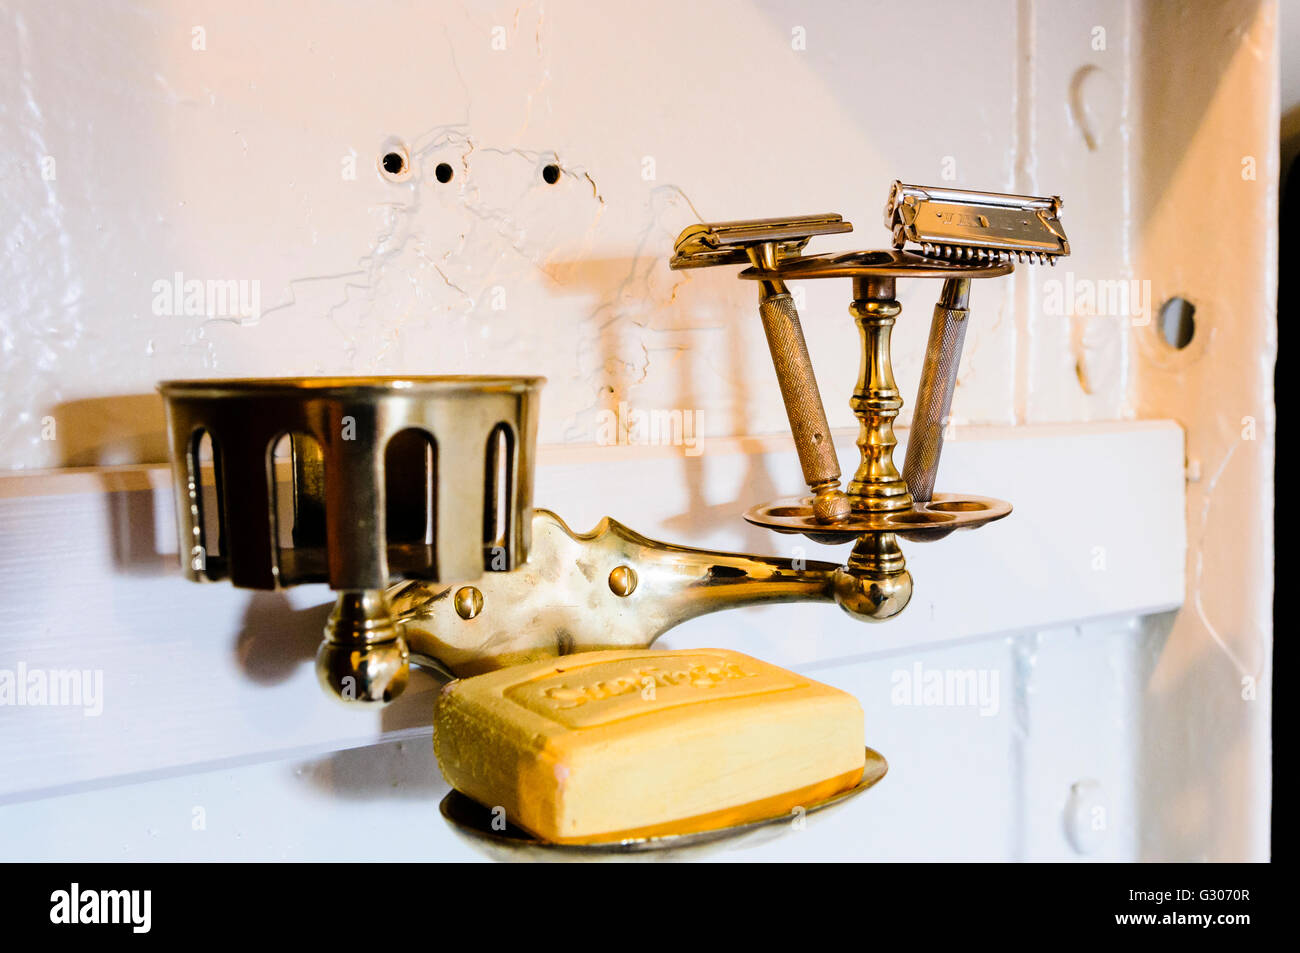 Old-fashioned gentleman's brass shaving and wash stand from the early 1900s. - Stock Image